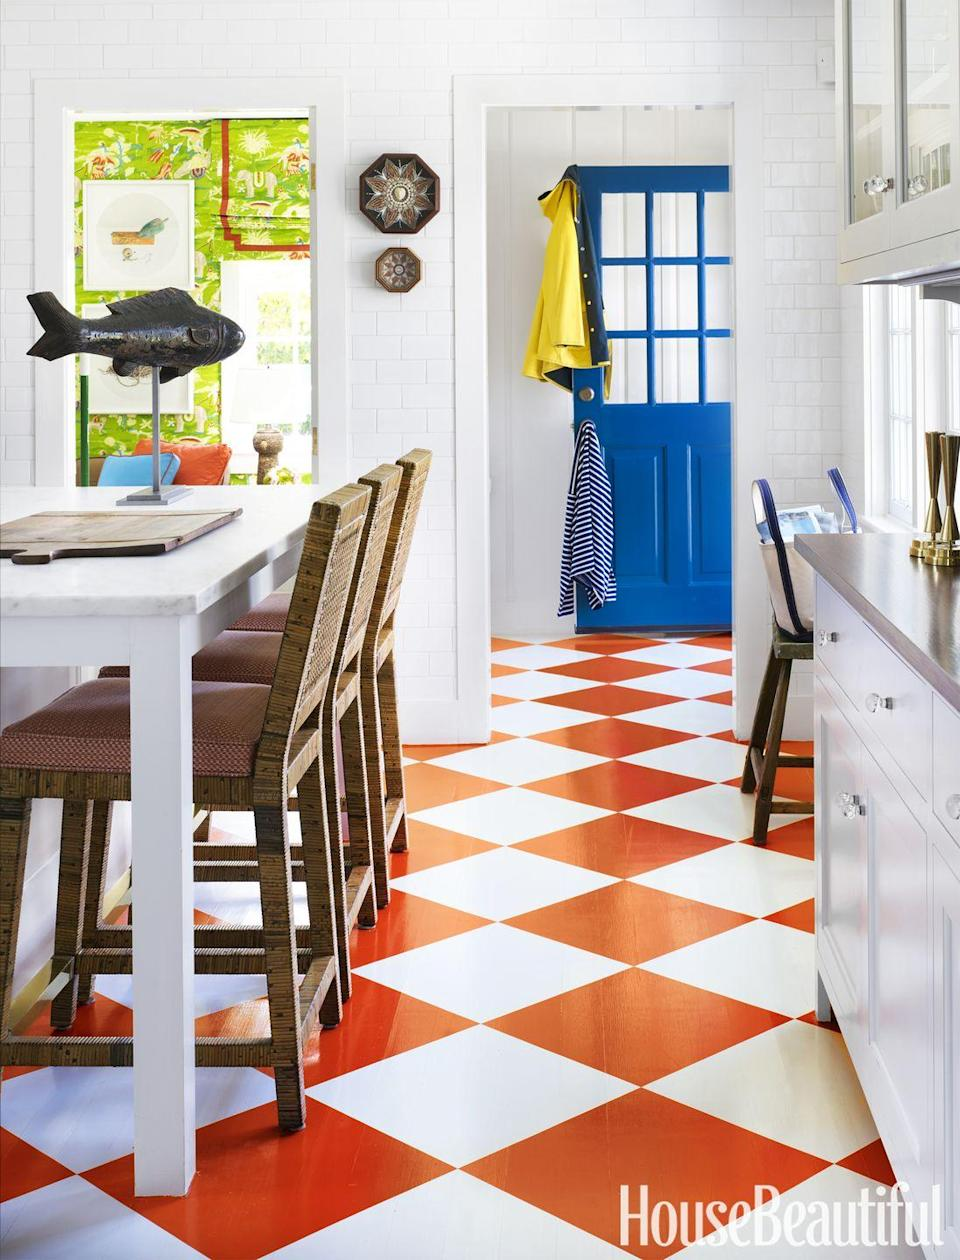 "<p>An <span class=""redactor-unlink"">orange checkerboard floor brightens up this </span> <a href=""https://www.housebeautiful.com/room-decorating/kitchens/g3223/white-kitchen-ideas/"" rel=""nofollow noopener"" target=""_blank"" data-ylk=""slk:mostly white kitchen"" class=""link rapid-noclick-resp"">mostly white kitchen</a> by Gary McBournie, while the contrasting blue door adds a quirky touch. Translation: Loosen up and opt for bold colors. </p>"